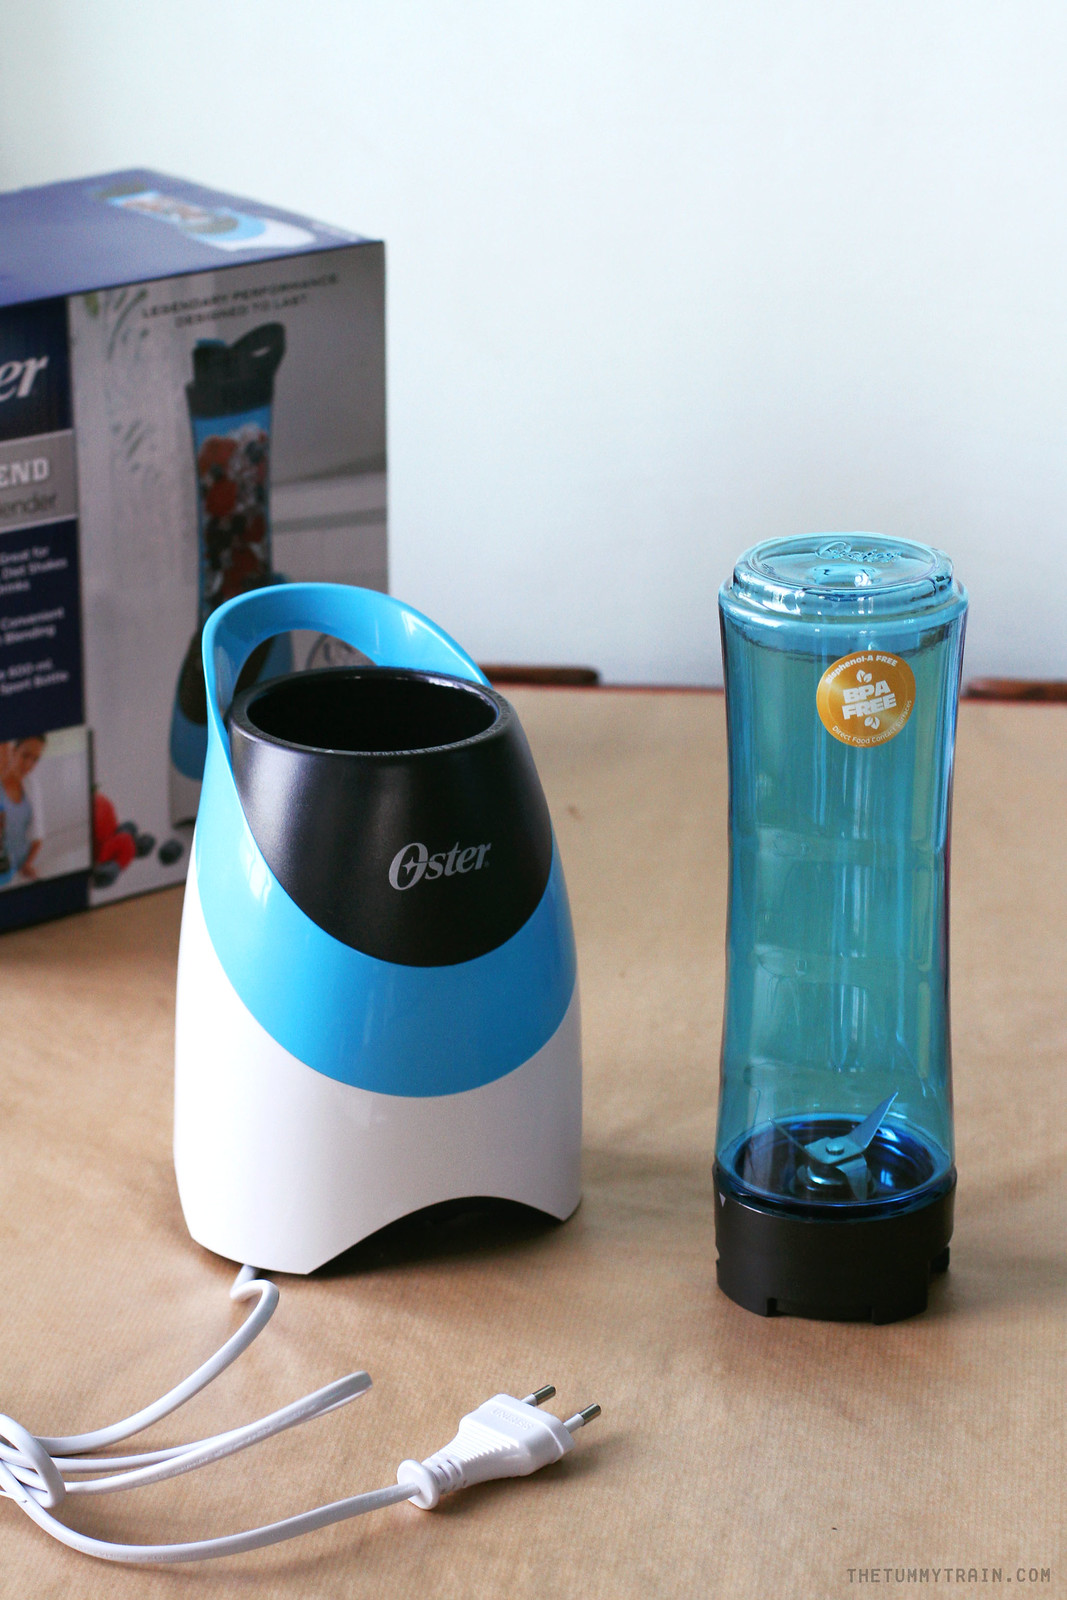 27190298822 cbd8618299 h - A review on the Oster MyBlend Personal Blender + Giveaway!